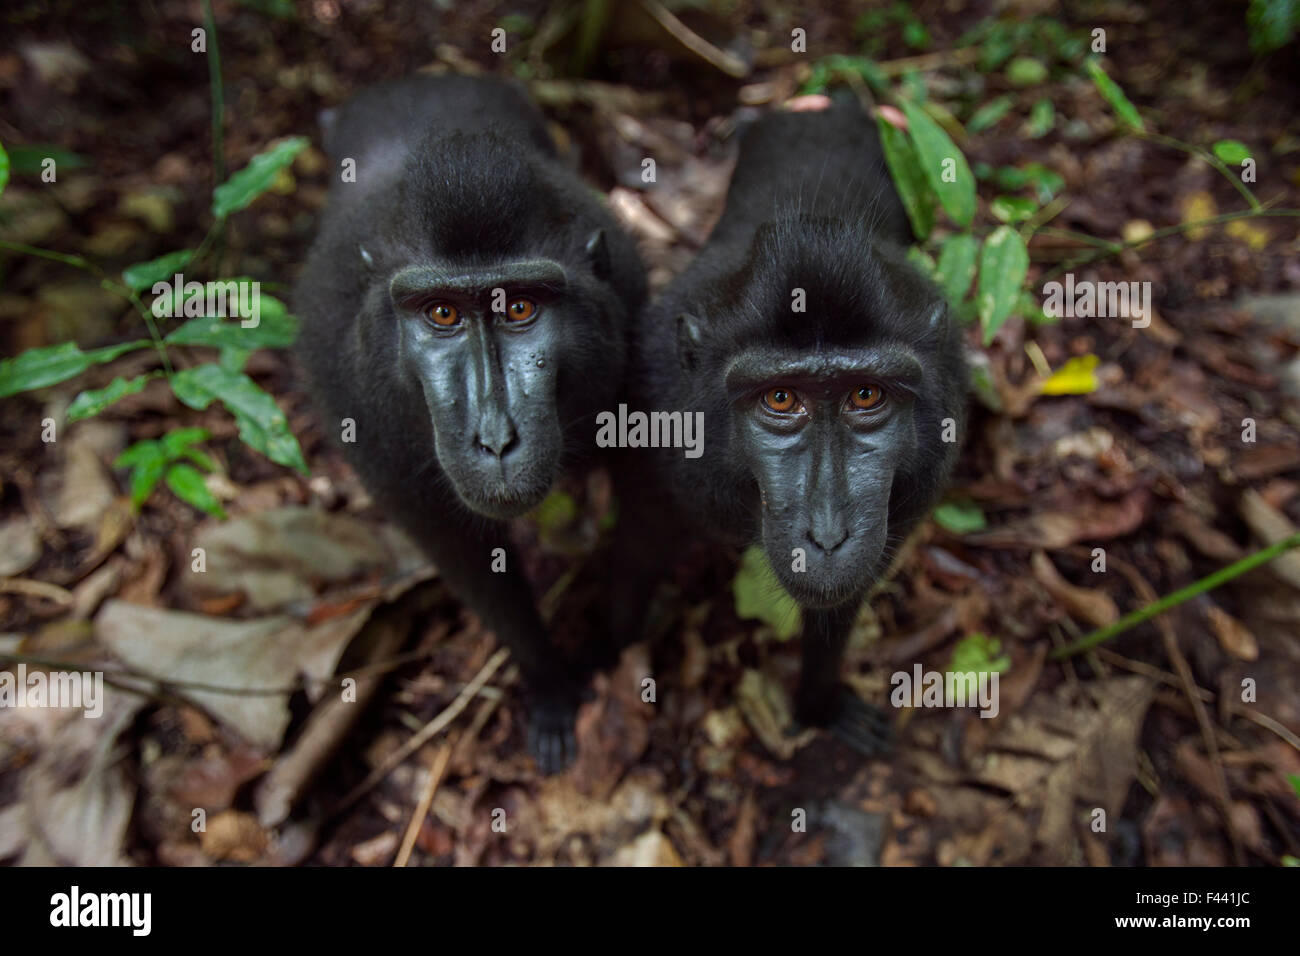 Celebes / Black crested macaque (Macaca nigra)  two juveniles approaching with curiosity, Tangkoko National Park, - Stock Image